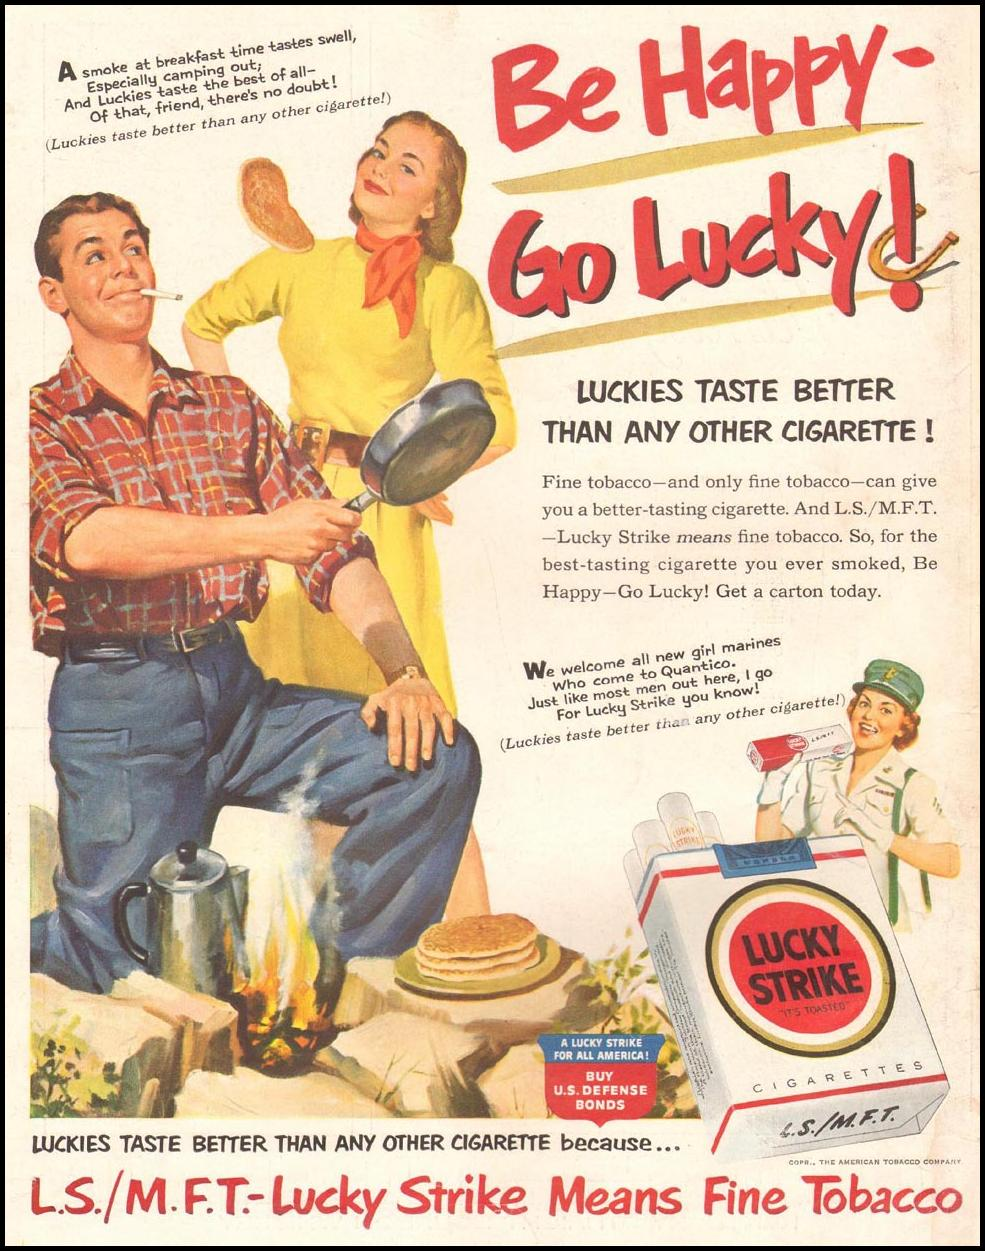 LUCKY STRIKE CIGARETTES LIFE 09/03/1951 BACK COVER